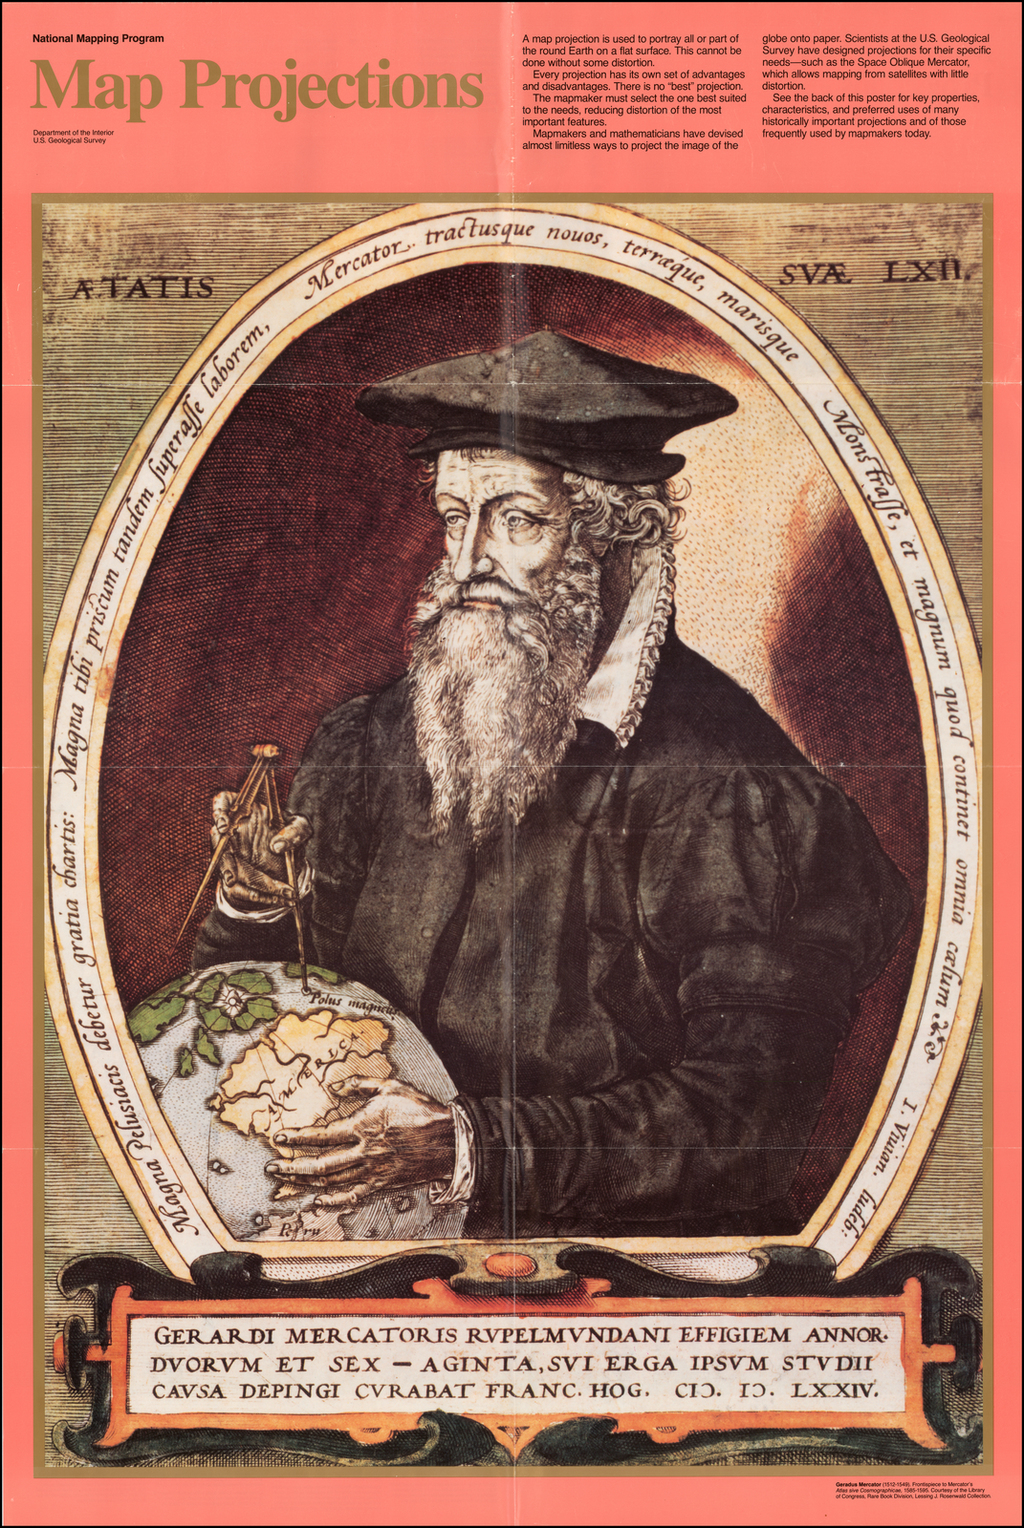 (Gerard Mercator) Map Projections -- National Mapping Program  By